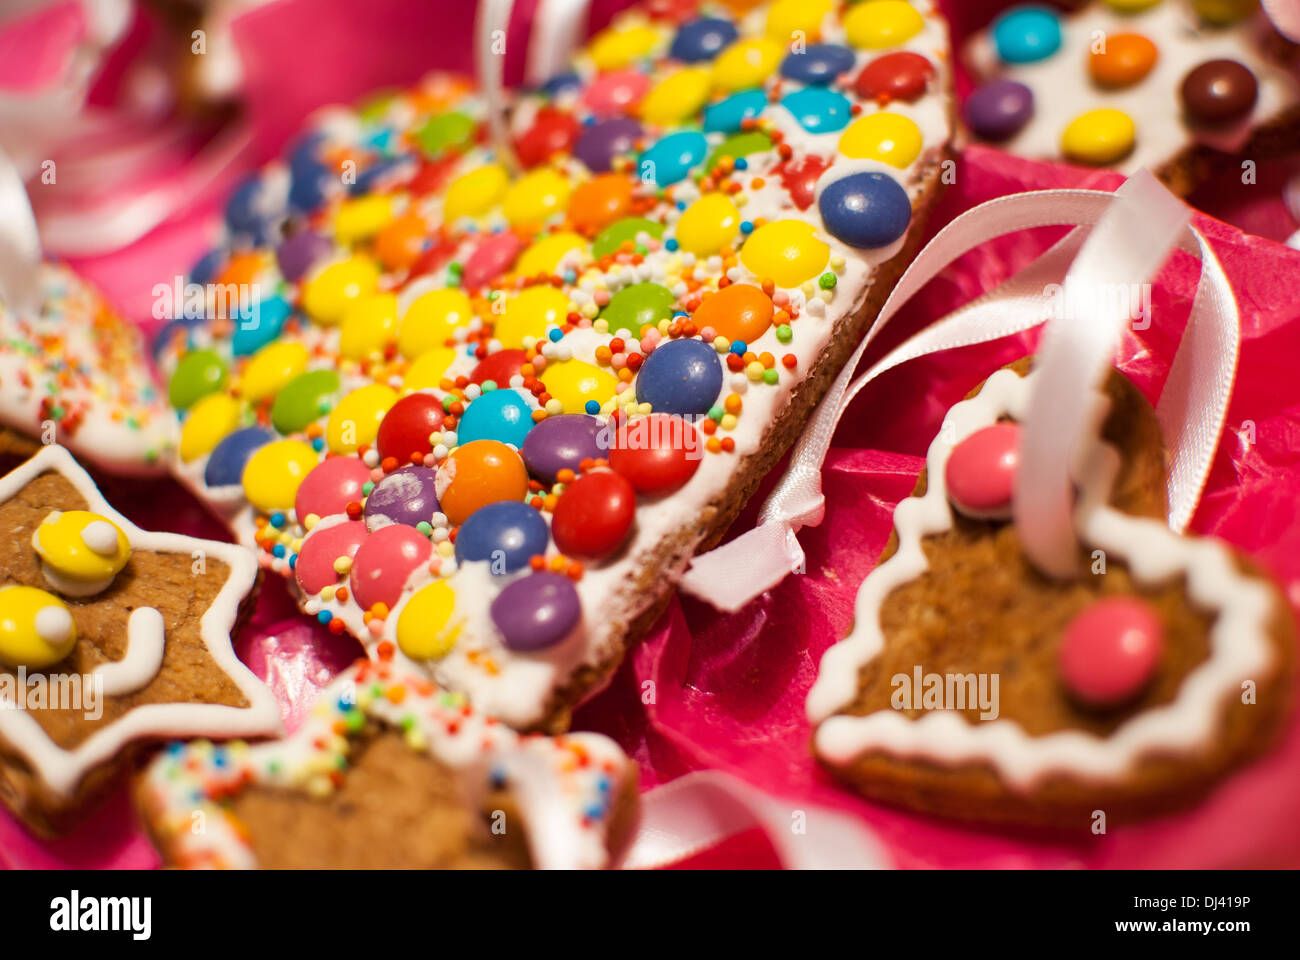 Detail of Christmas holiday heart shape M&M's like cookies - Stock Image